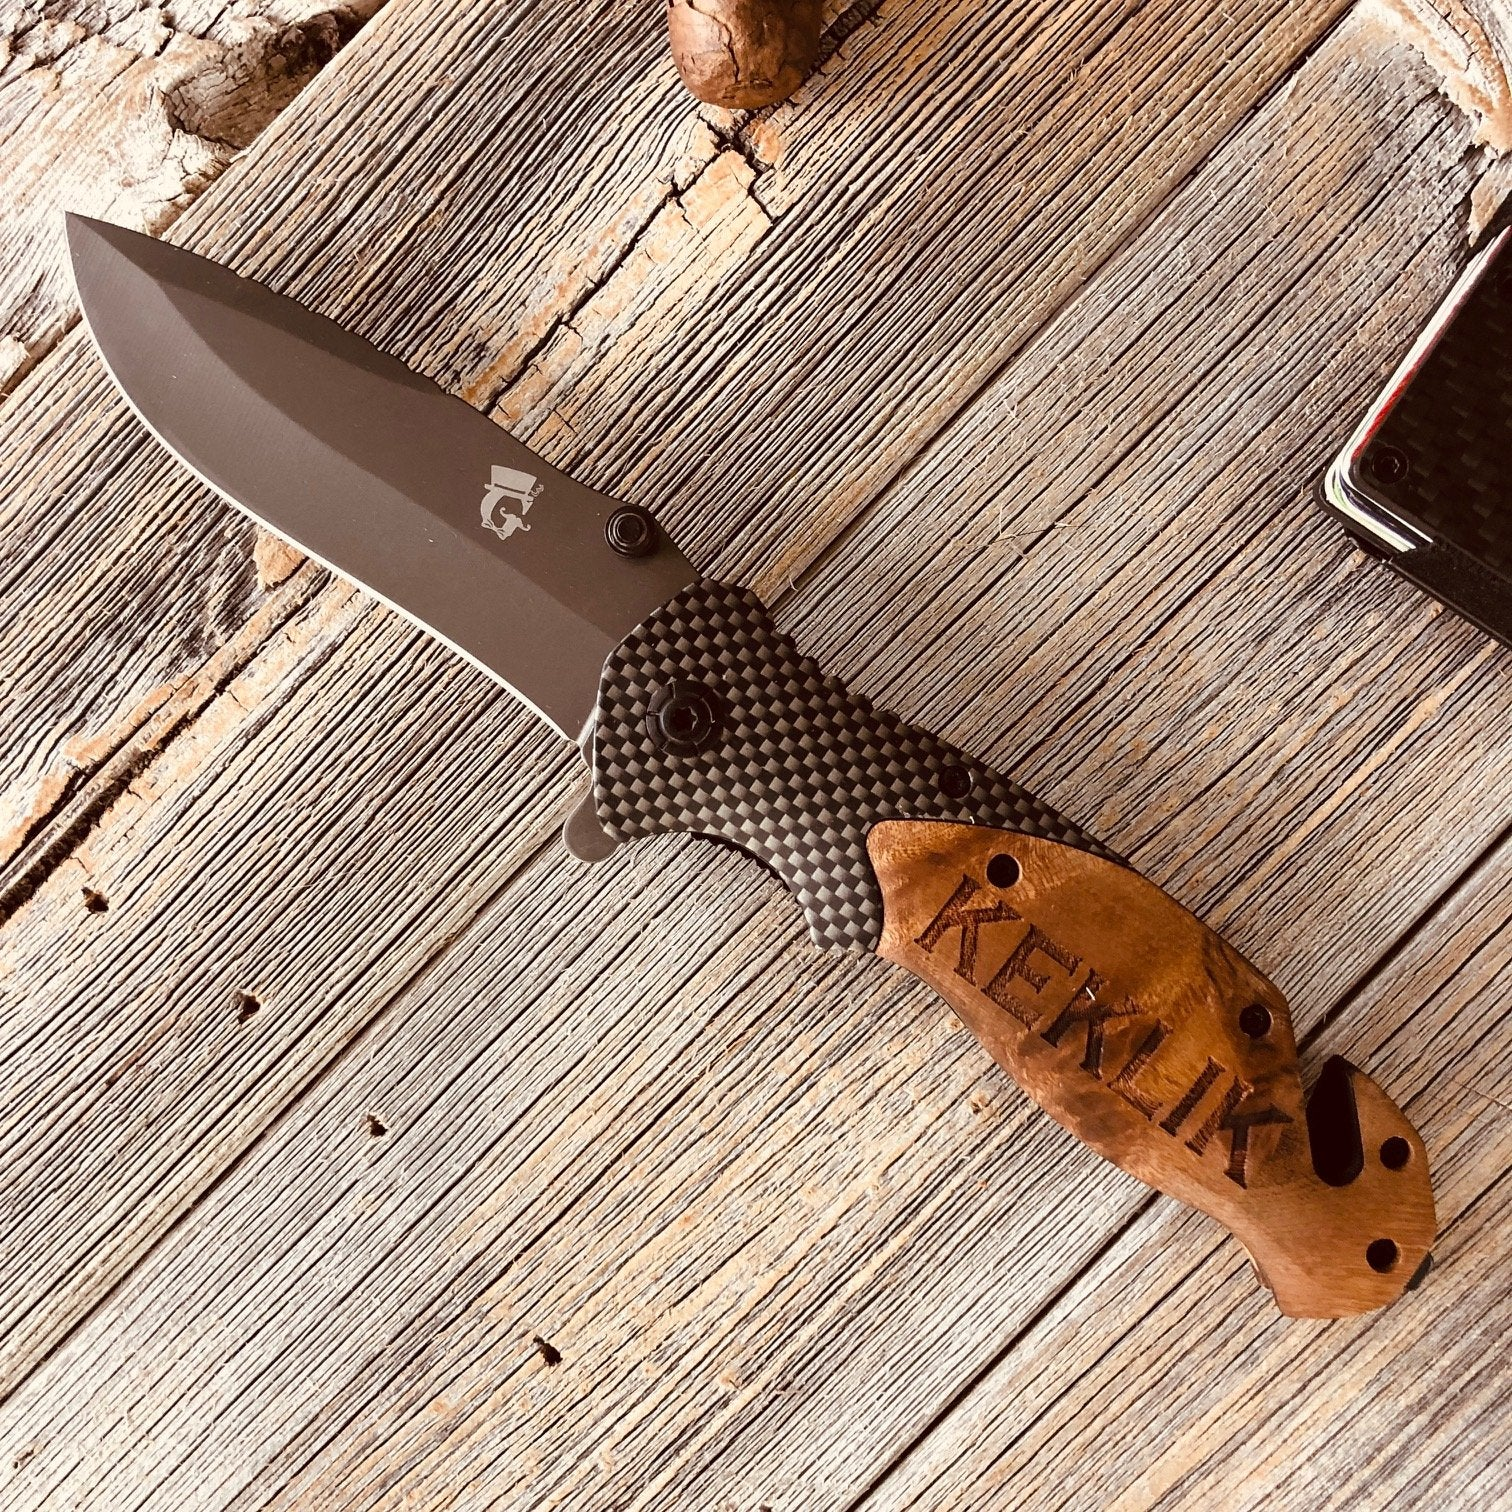 Carbon Fiber Style Personalized Knife ?id=15633016029269